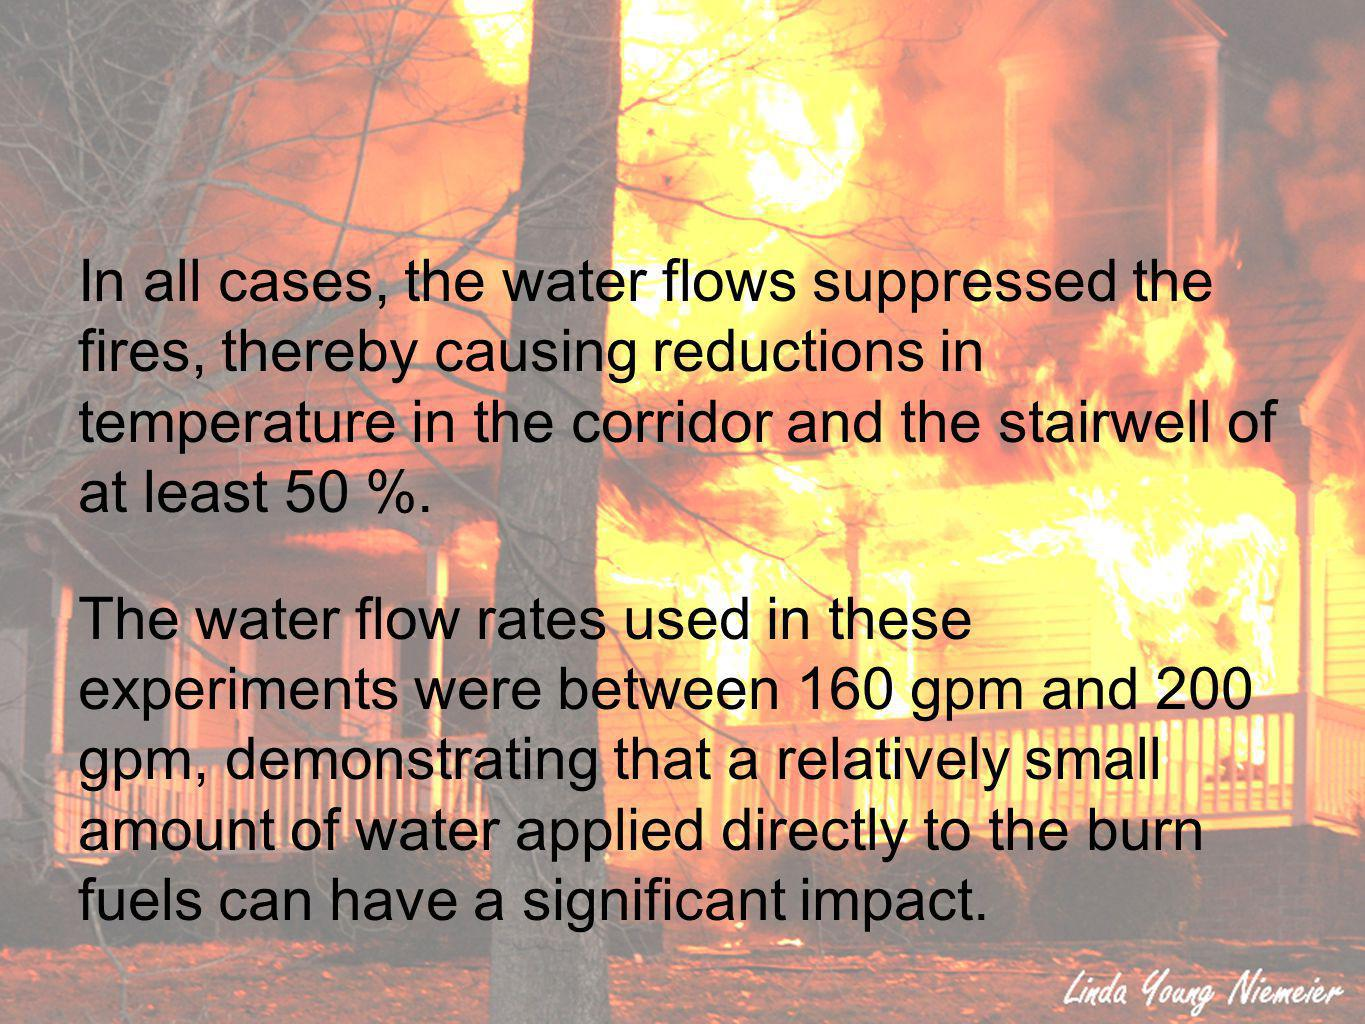 In all cases, the water flows suppressed the fires, thereby causing reductions in temperature in the corridor and the stairwell of at least 50 %.